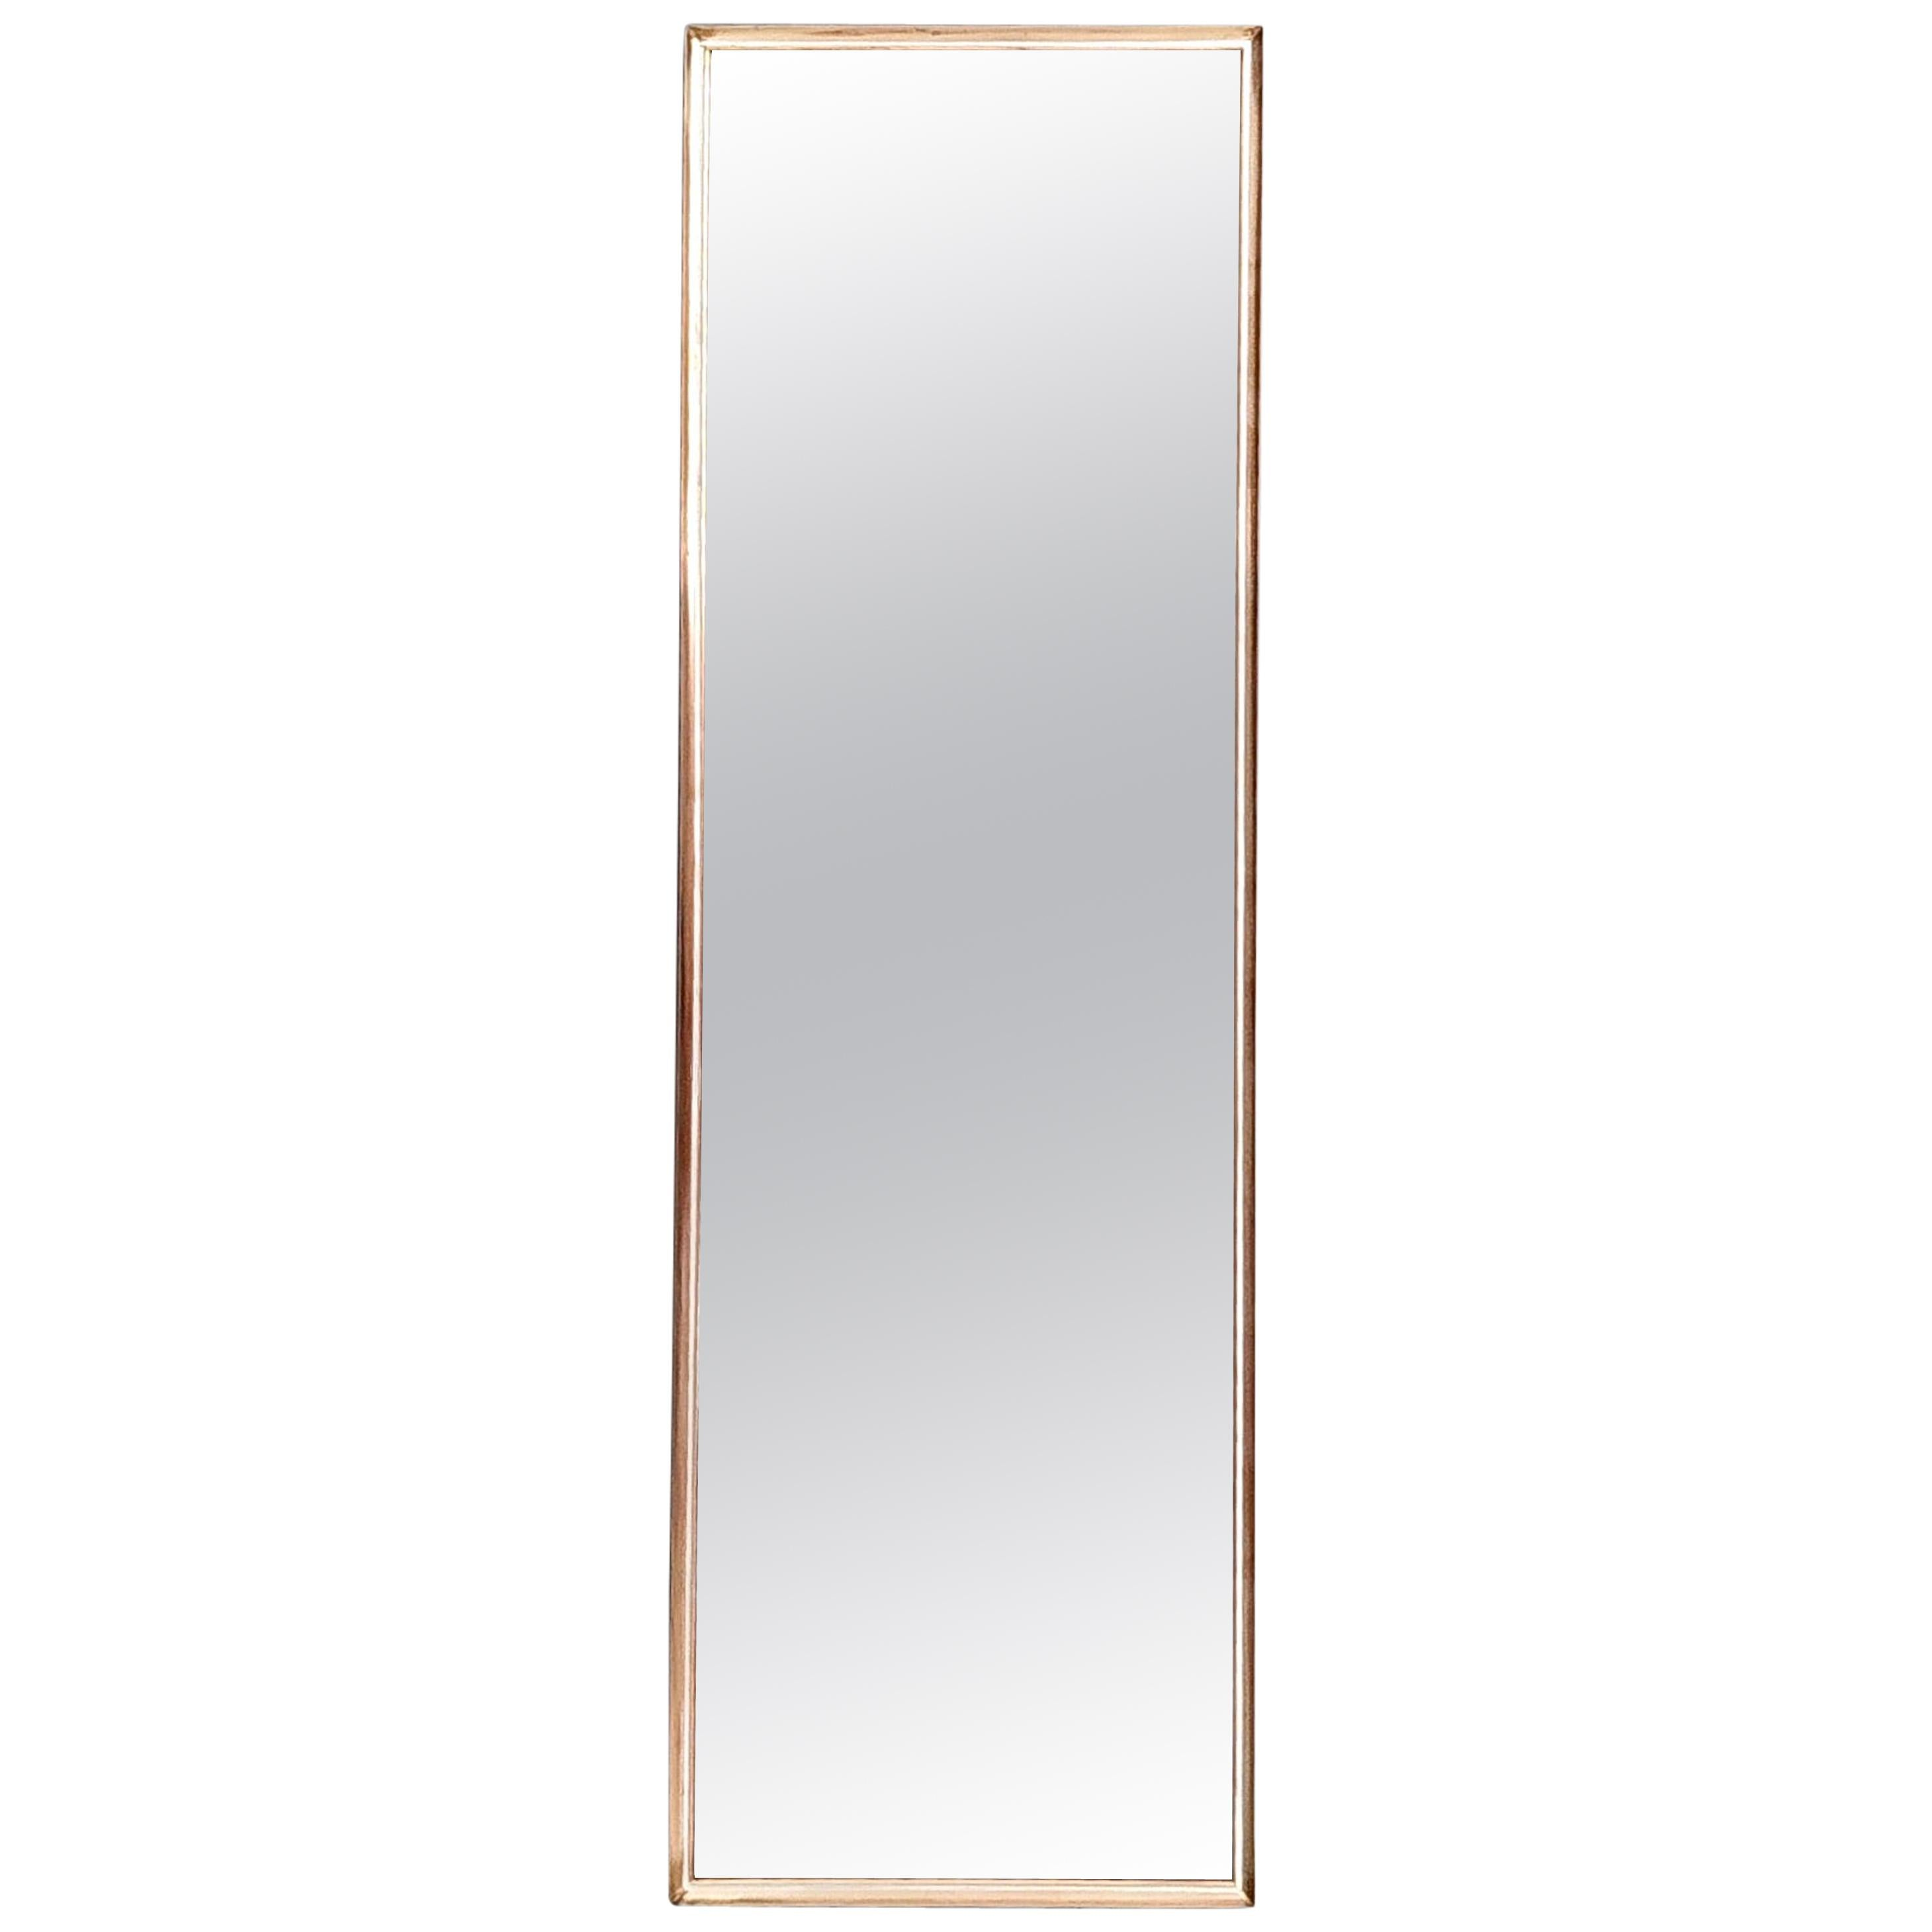 Vintage Hallway Rectangular Wall Mirror with Brass Frame, Italy